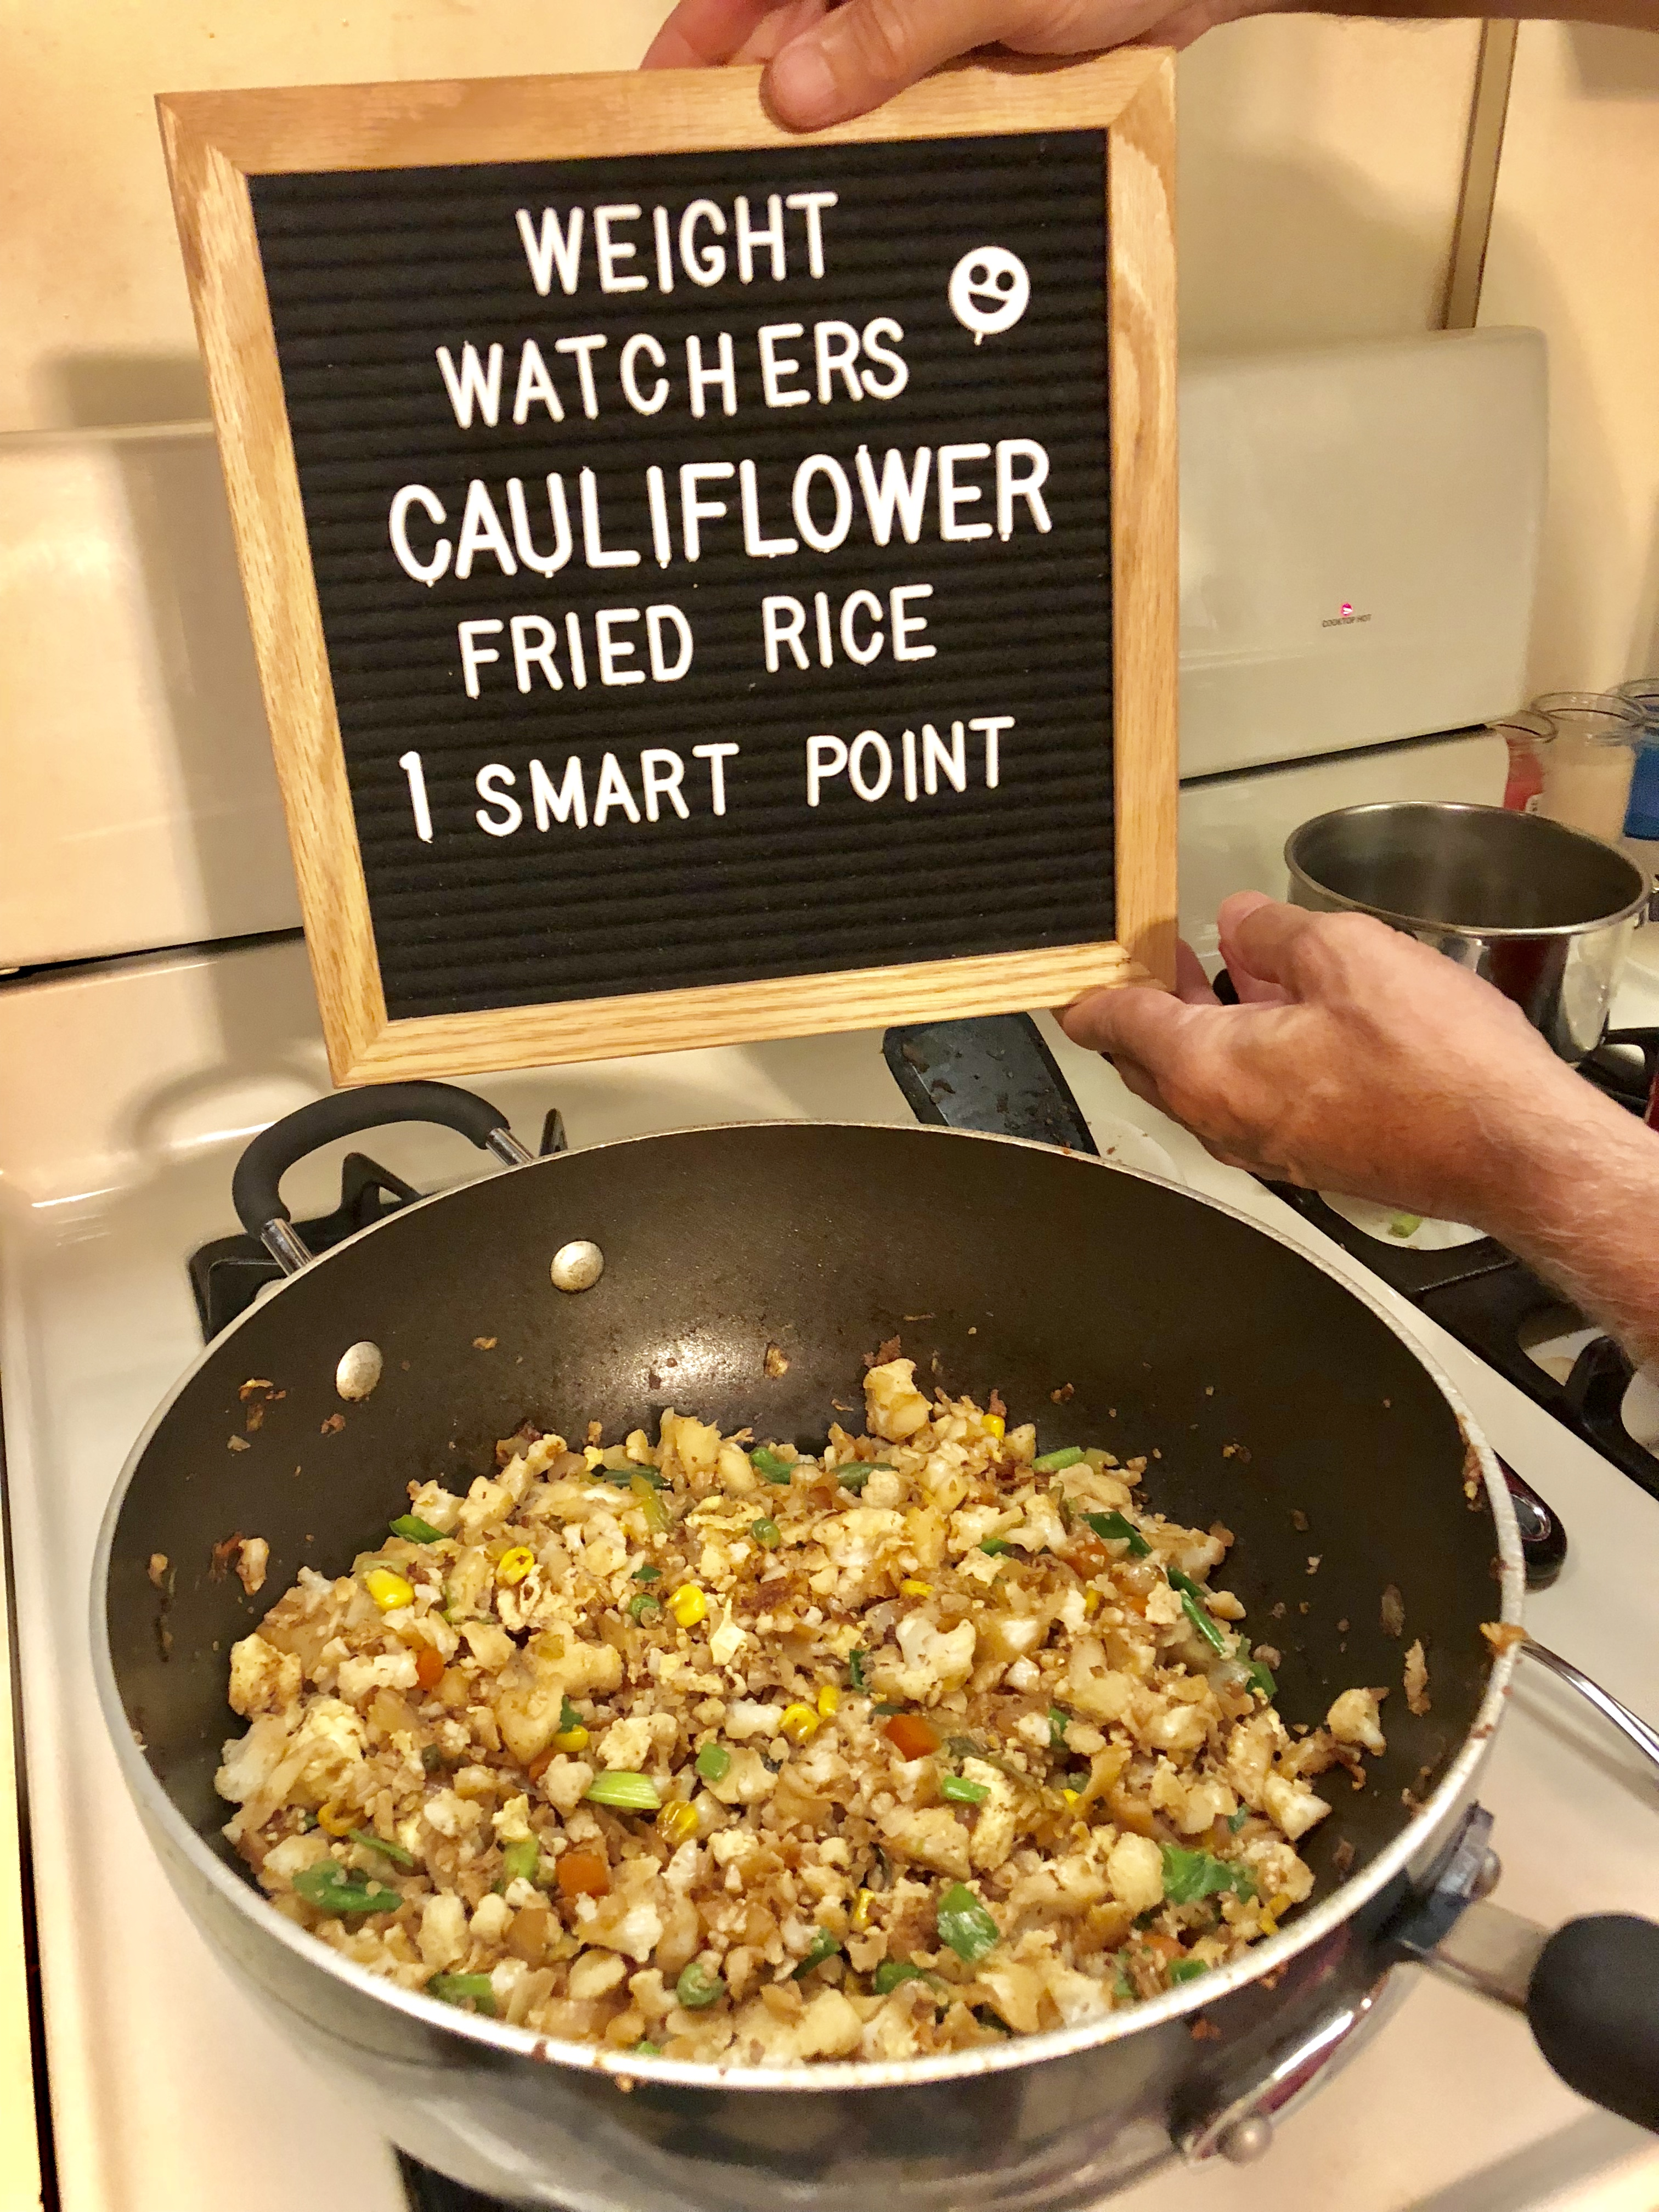 Weight Watchers Cauliflower Fried Rice 1 Smart Point per serving